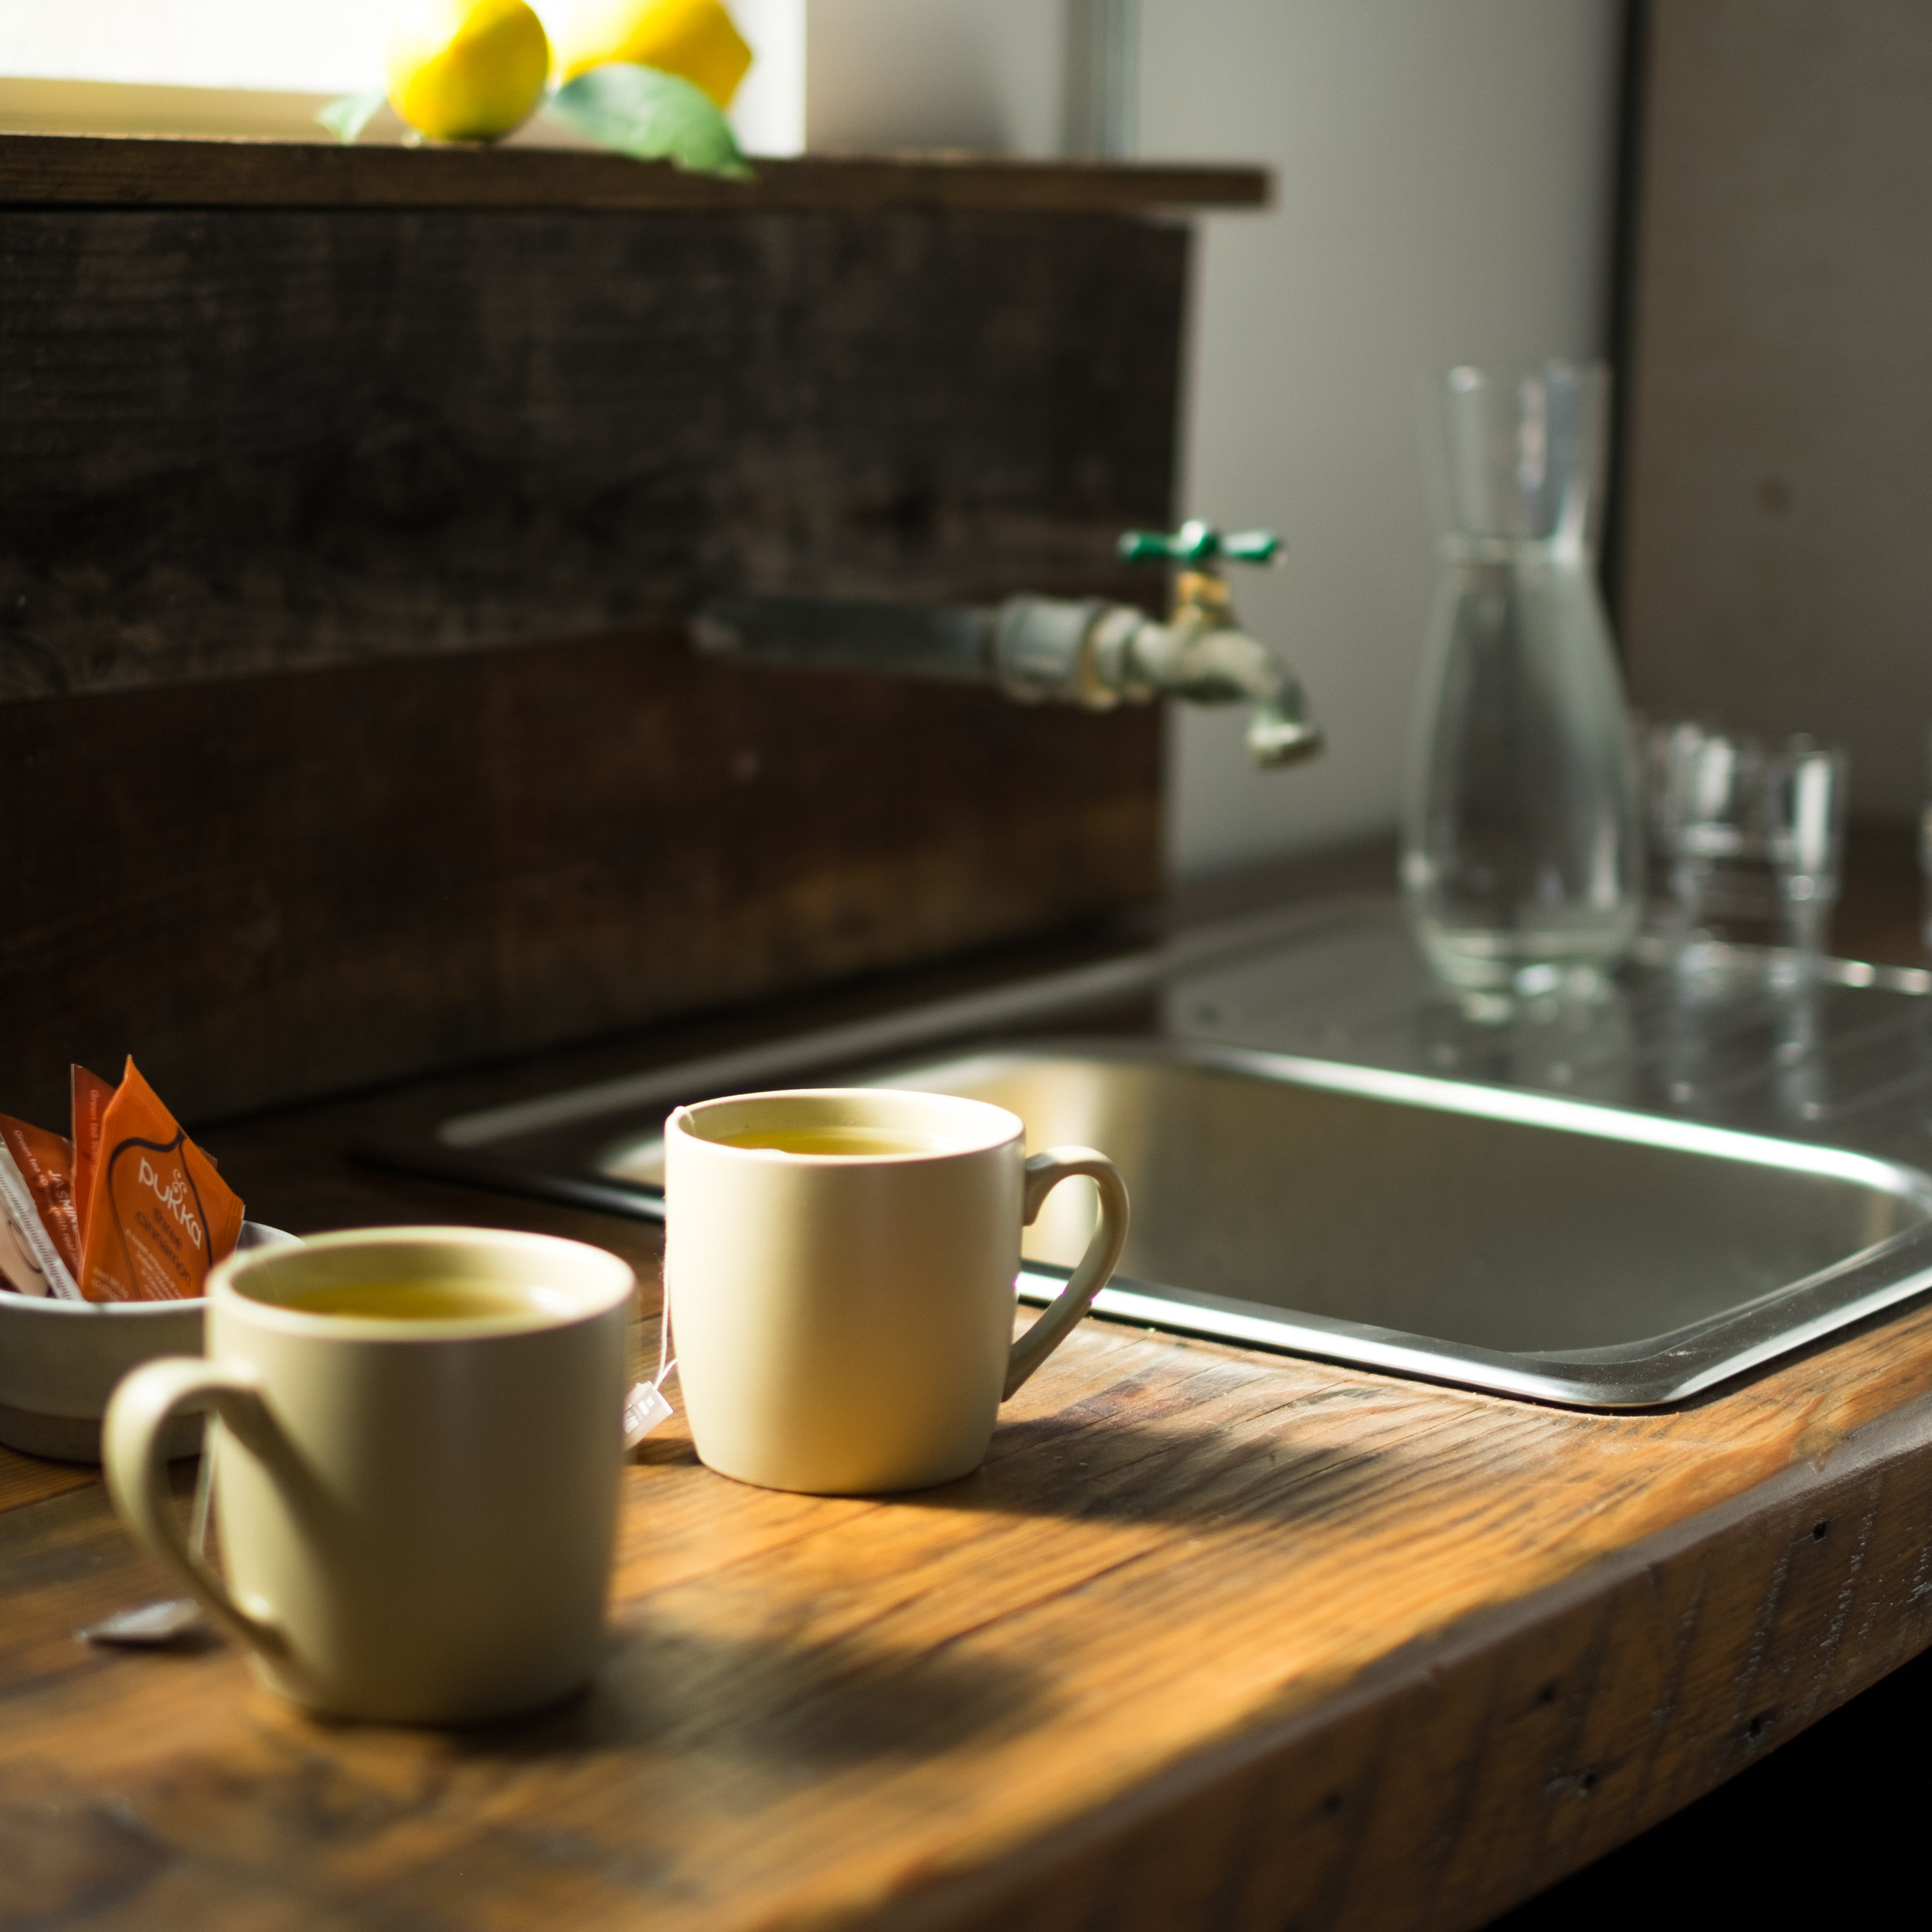 Hospitality - We have a small kitchen, with cups, glasses & flatware that can accommodate coffee, tea, beverage and snack service. We can also fetch your favorite meals and deliver to the set. If you are sleeping over, need a cocktail or want to get your surf on, we have a list of suggestions for you.